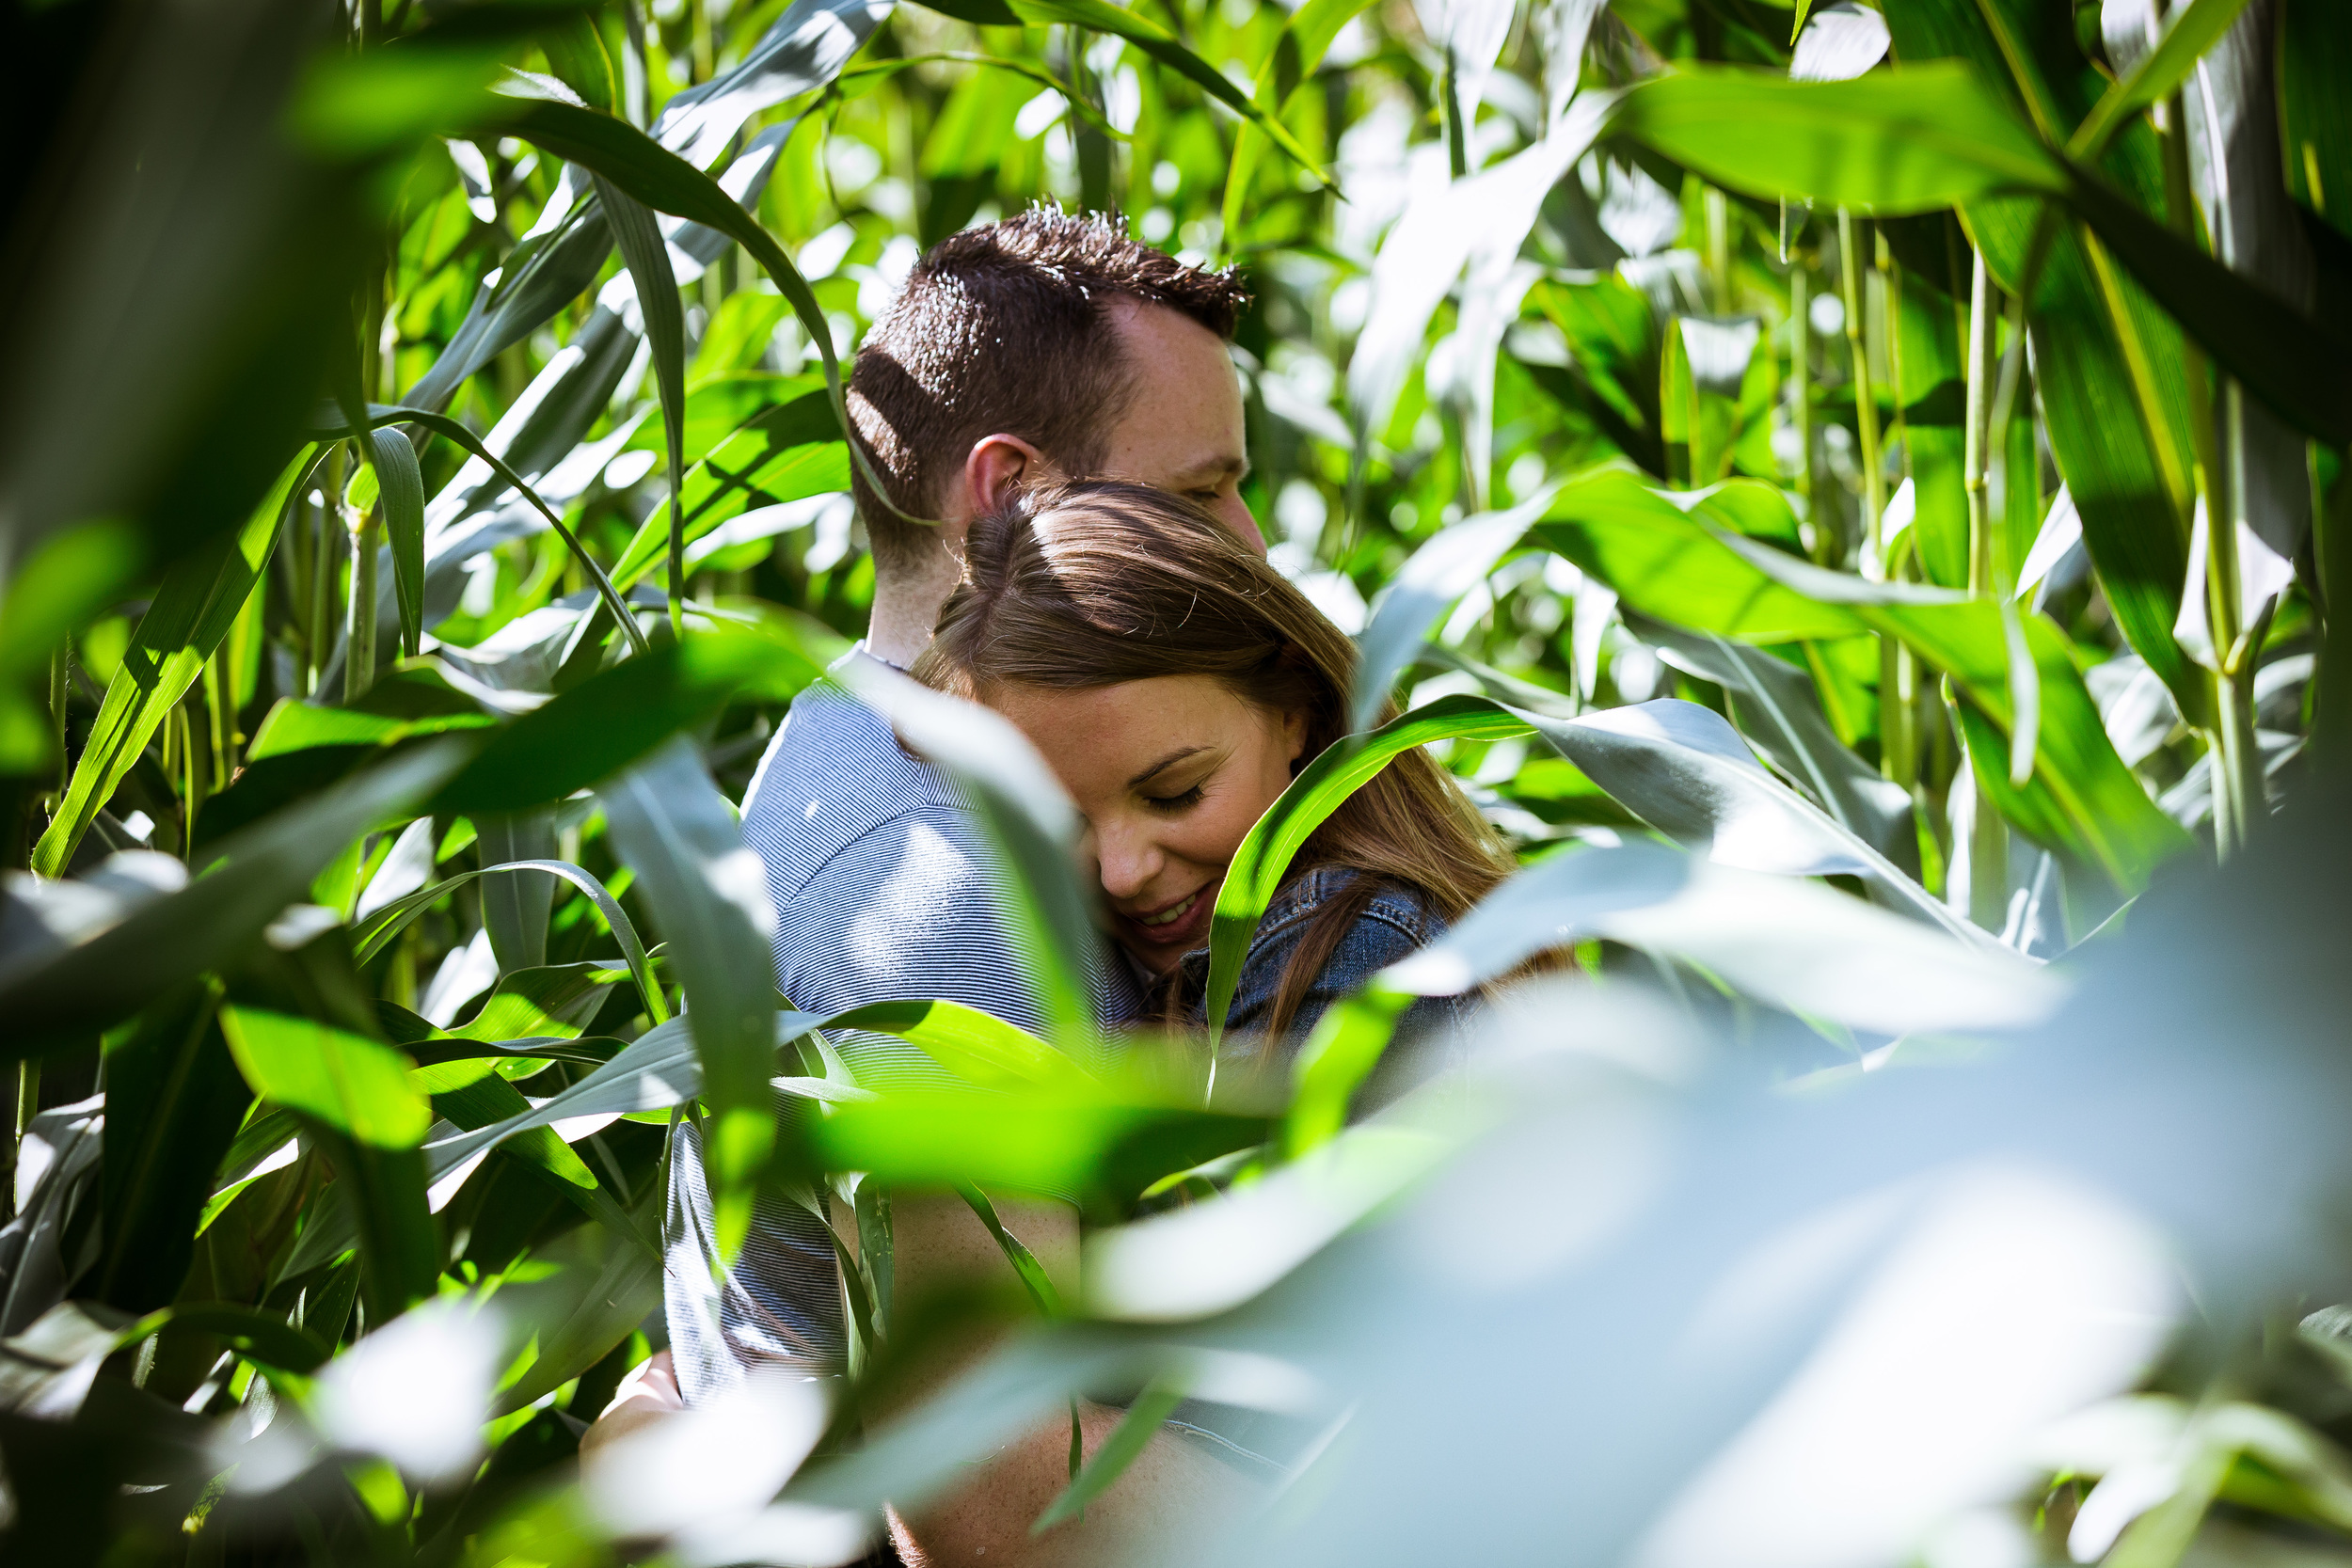 I got Kerry and Dan to walk right into the field, into a small section of shade, this allowed me to work around the plant life to capture them naturally interacting a great way to end the session.